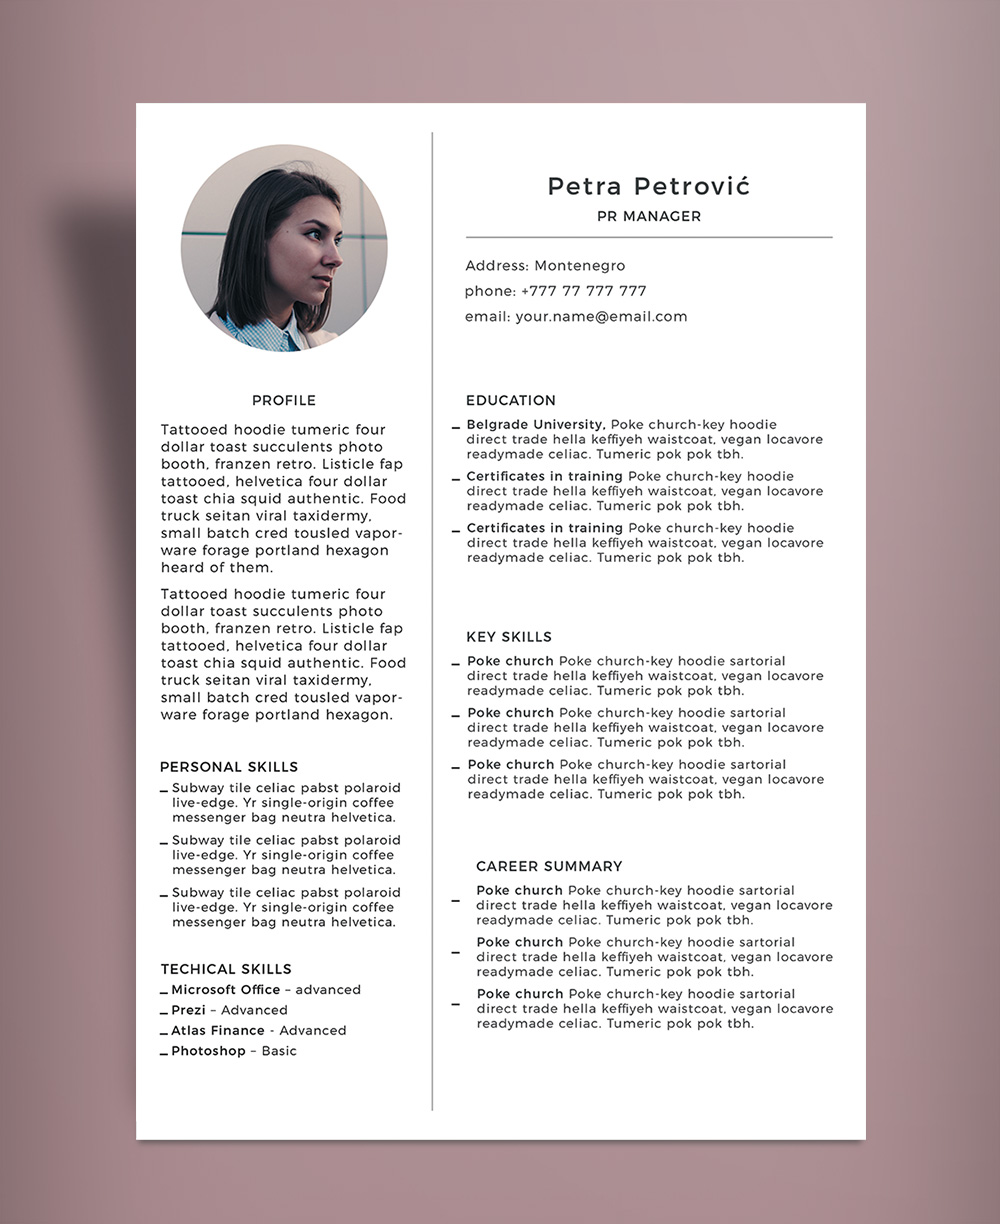 Simple & Minimal Resume (CV) Template PSD File (3)